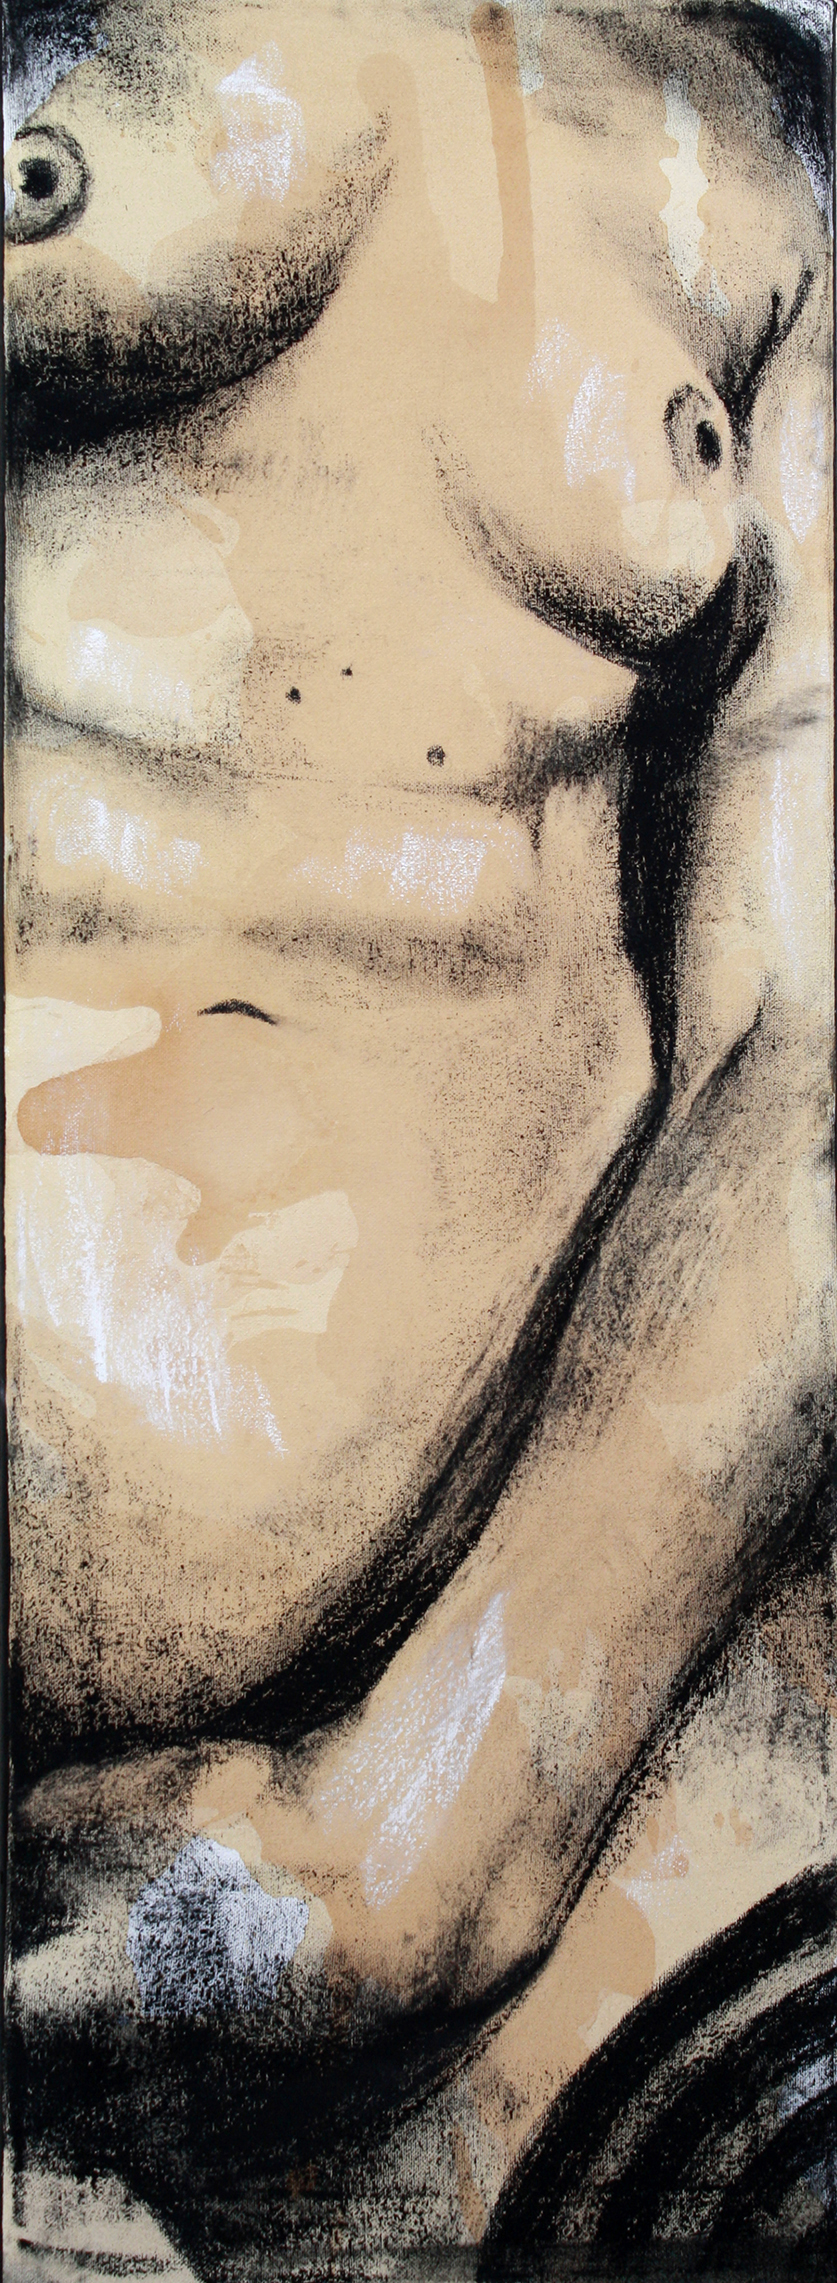 Sexting IMG.201405.001  Charcoal & Tea on Canvas ©2014 The Femme Project